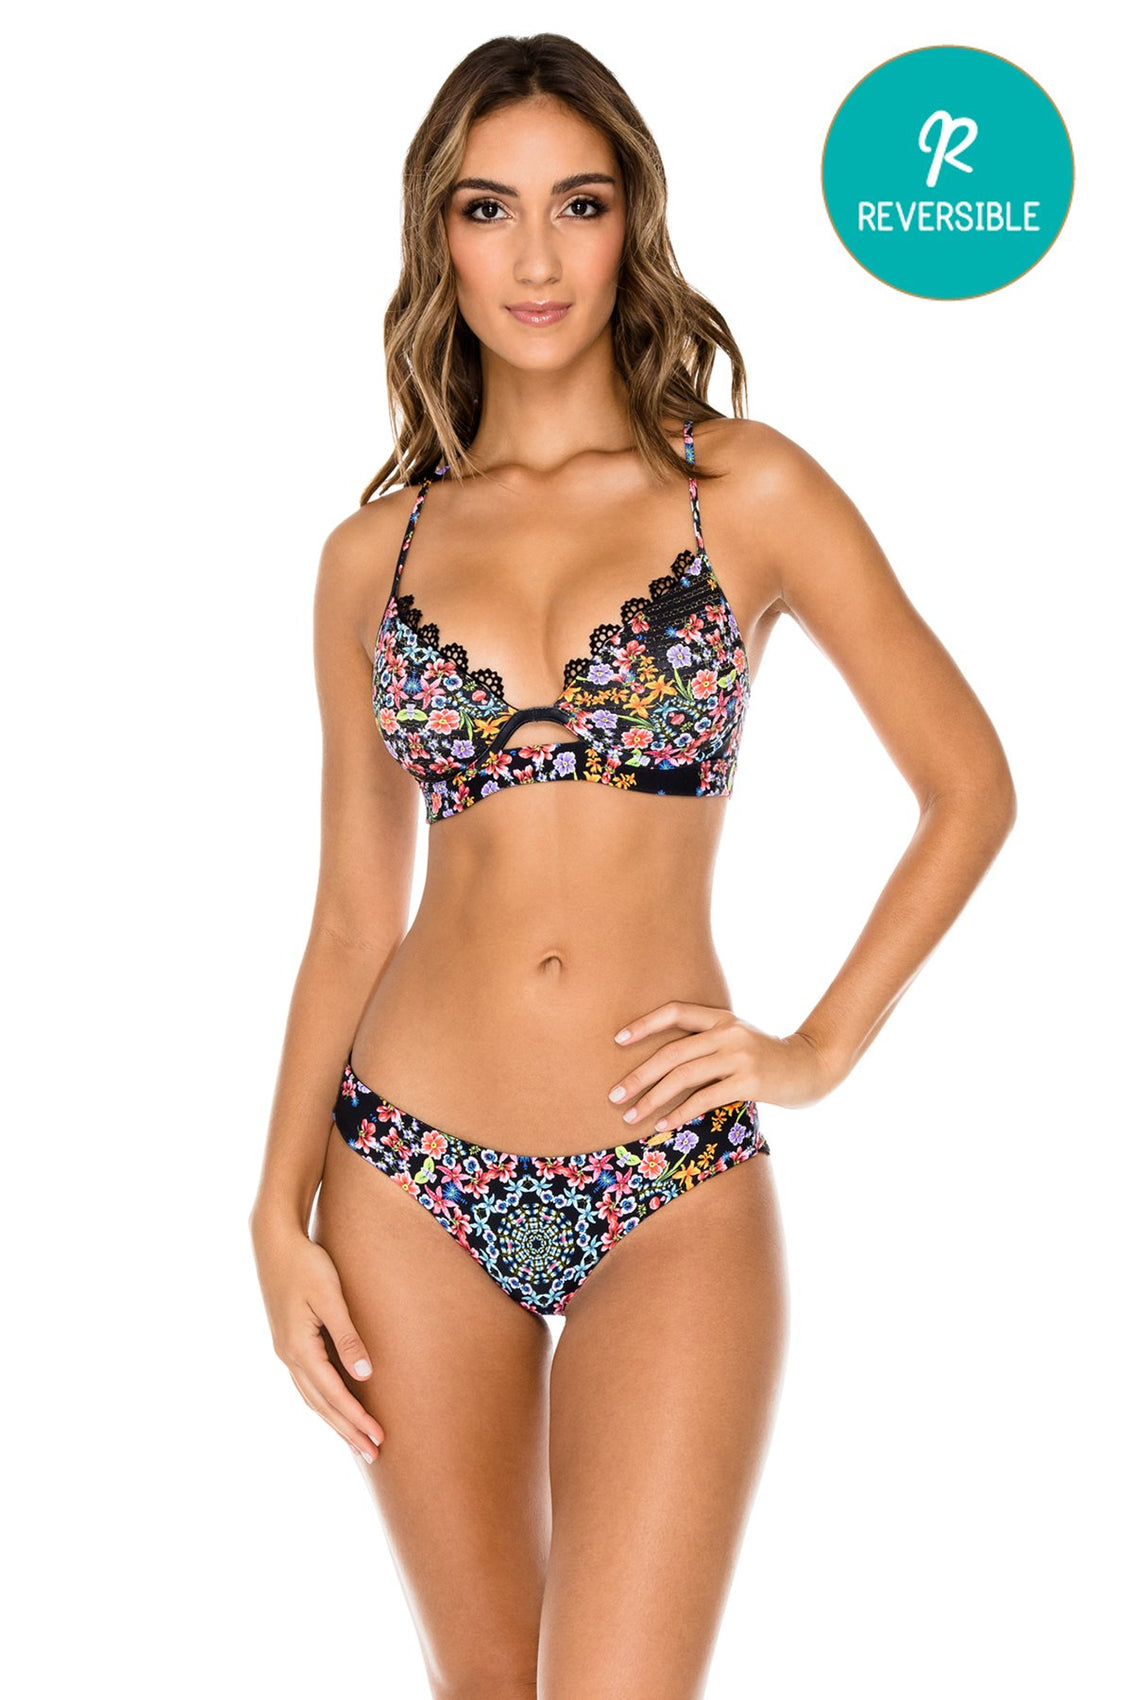 NOCHES DE SEVILLA - Underwire Top & Wavey Ruched Back Brazilian Bottom • Multicolor